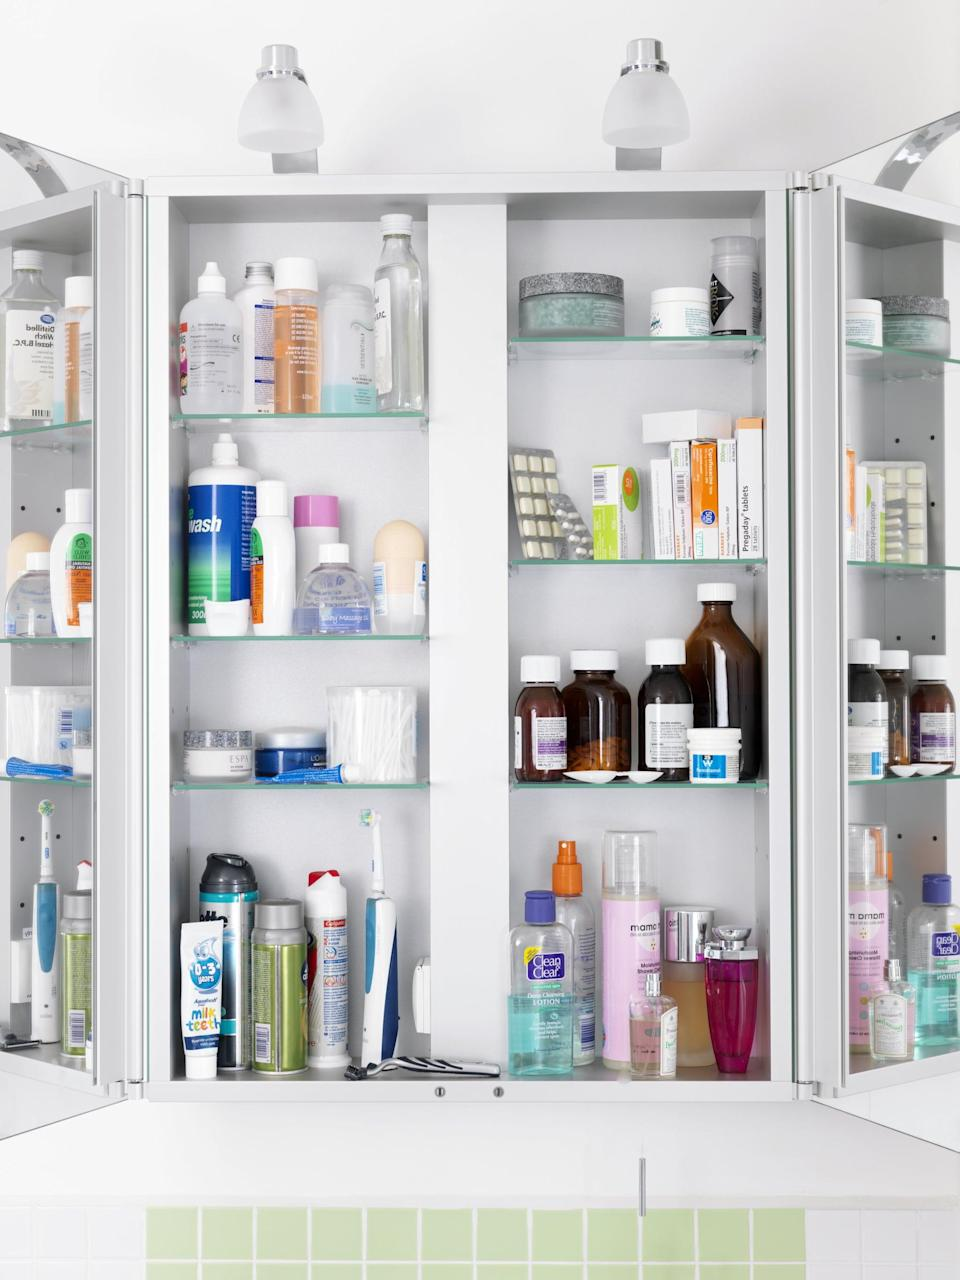 """<p>As fun as it can be to try new skin-care products, doing so too frequently can leave you with more woes than you started with. </p> <p>""""I know that it can be frustrating to have breakouts and blemishes, but the tendency is to research new products and try too many at one time or switch them out before the active ingredients have a chance to make an impact on the skin,"""" said <a href=""""https://www.instagram.com/dr.coreyhartman"""" class=""""link rapid-noclick-resp"""" rel=""""nofollow noopener"""" target=""""_blank"""" data-ylk=""""slk:Corey L. Hartman"""">Corey L. Hartman</a>, MD, board-certified dermatologist and founder of Skin Wellness Dermatology in Birmingham, AL. """"Most ingredients will take at least four to six weeks of consistent use before making changes that are noticeable, so hang in there and give them a chance to work.""""</p> <p>If after six weeks of using a product you still don't notice a difference, then you should see your dermatologist to find a better solution.</p>"""